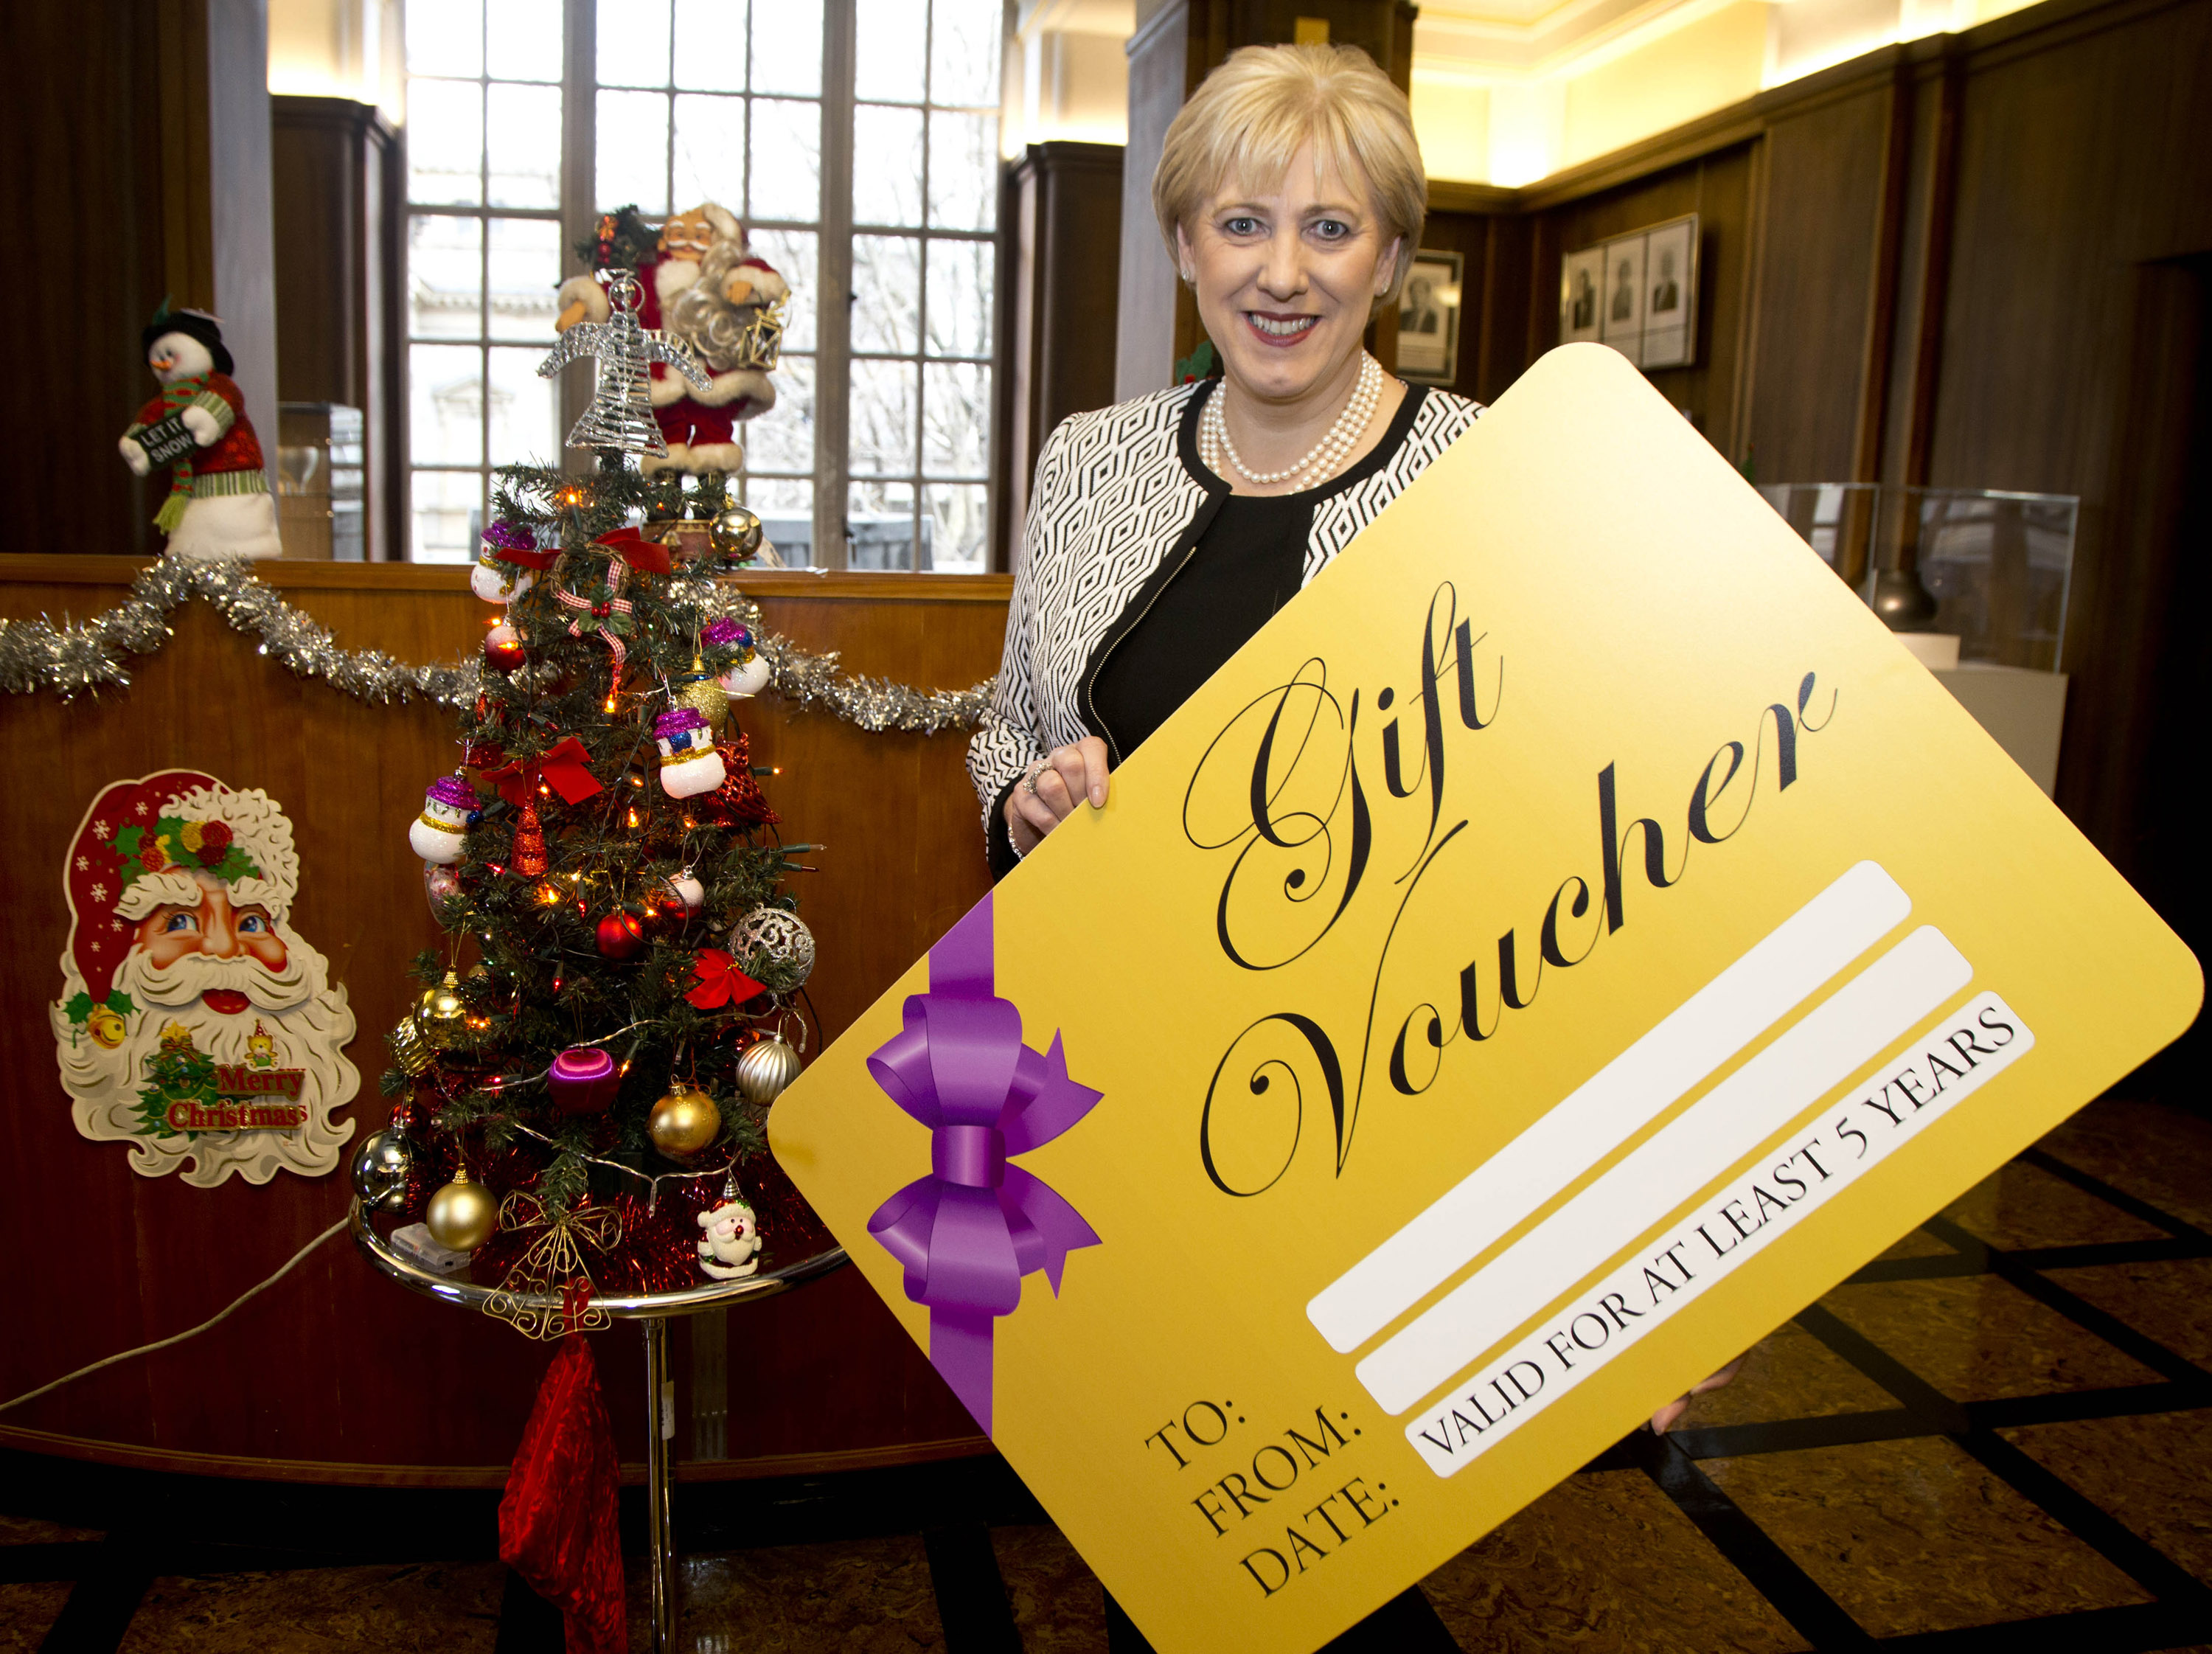 Minister Humphreys secures Cabinet approval for legislation to put a 5-year minimum expiry date on gift vouchers